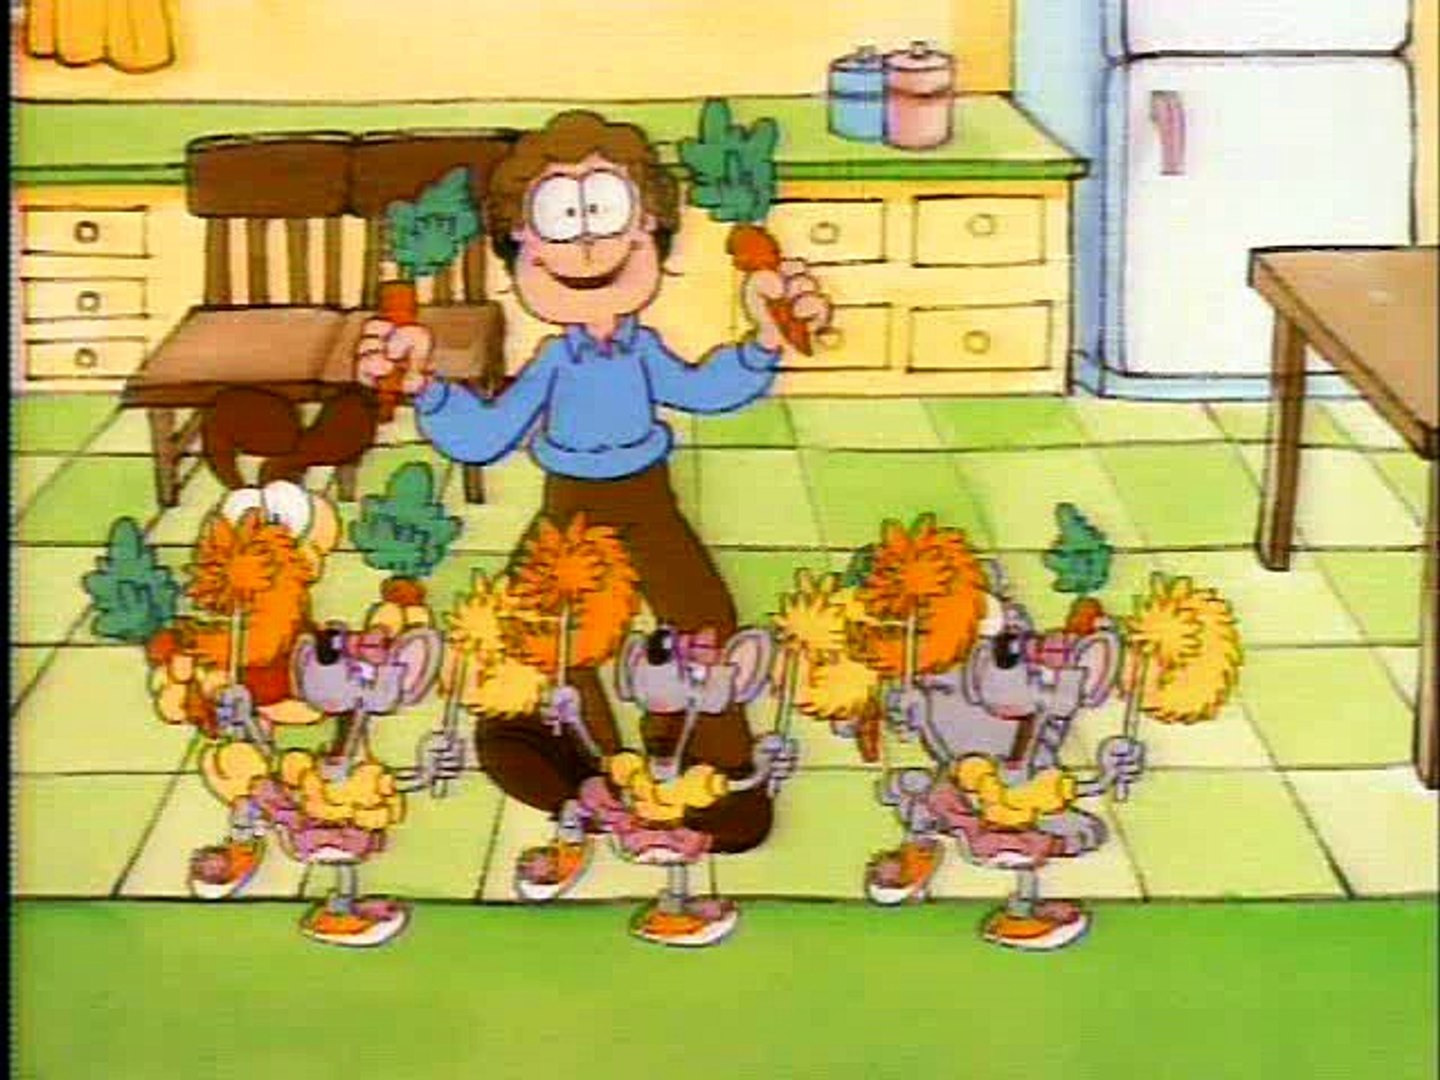 Garfield And Friends 073 The Automated Animated Adventure It S A Wonderful Wade Truckin Odie Video Dailymotion